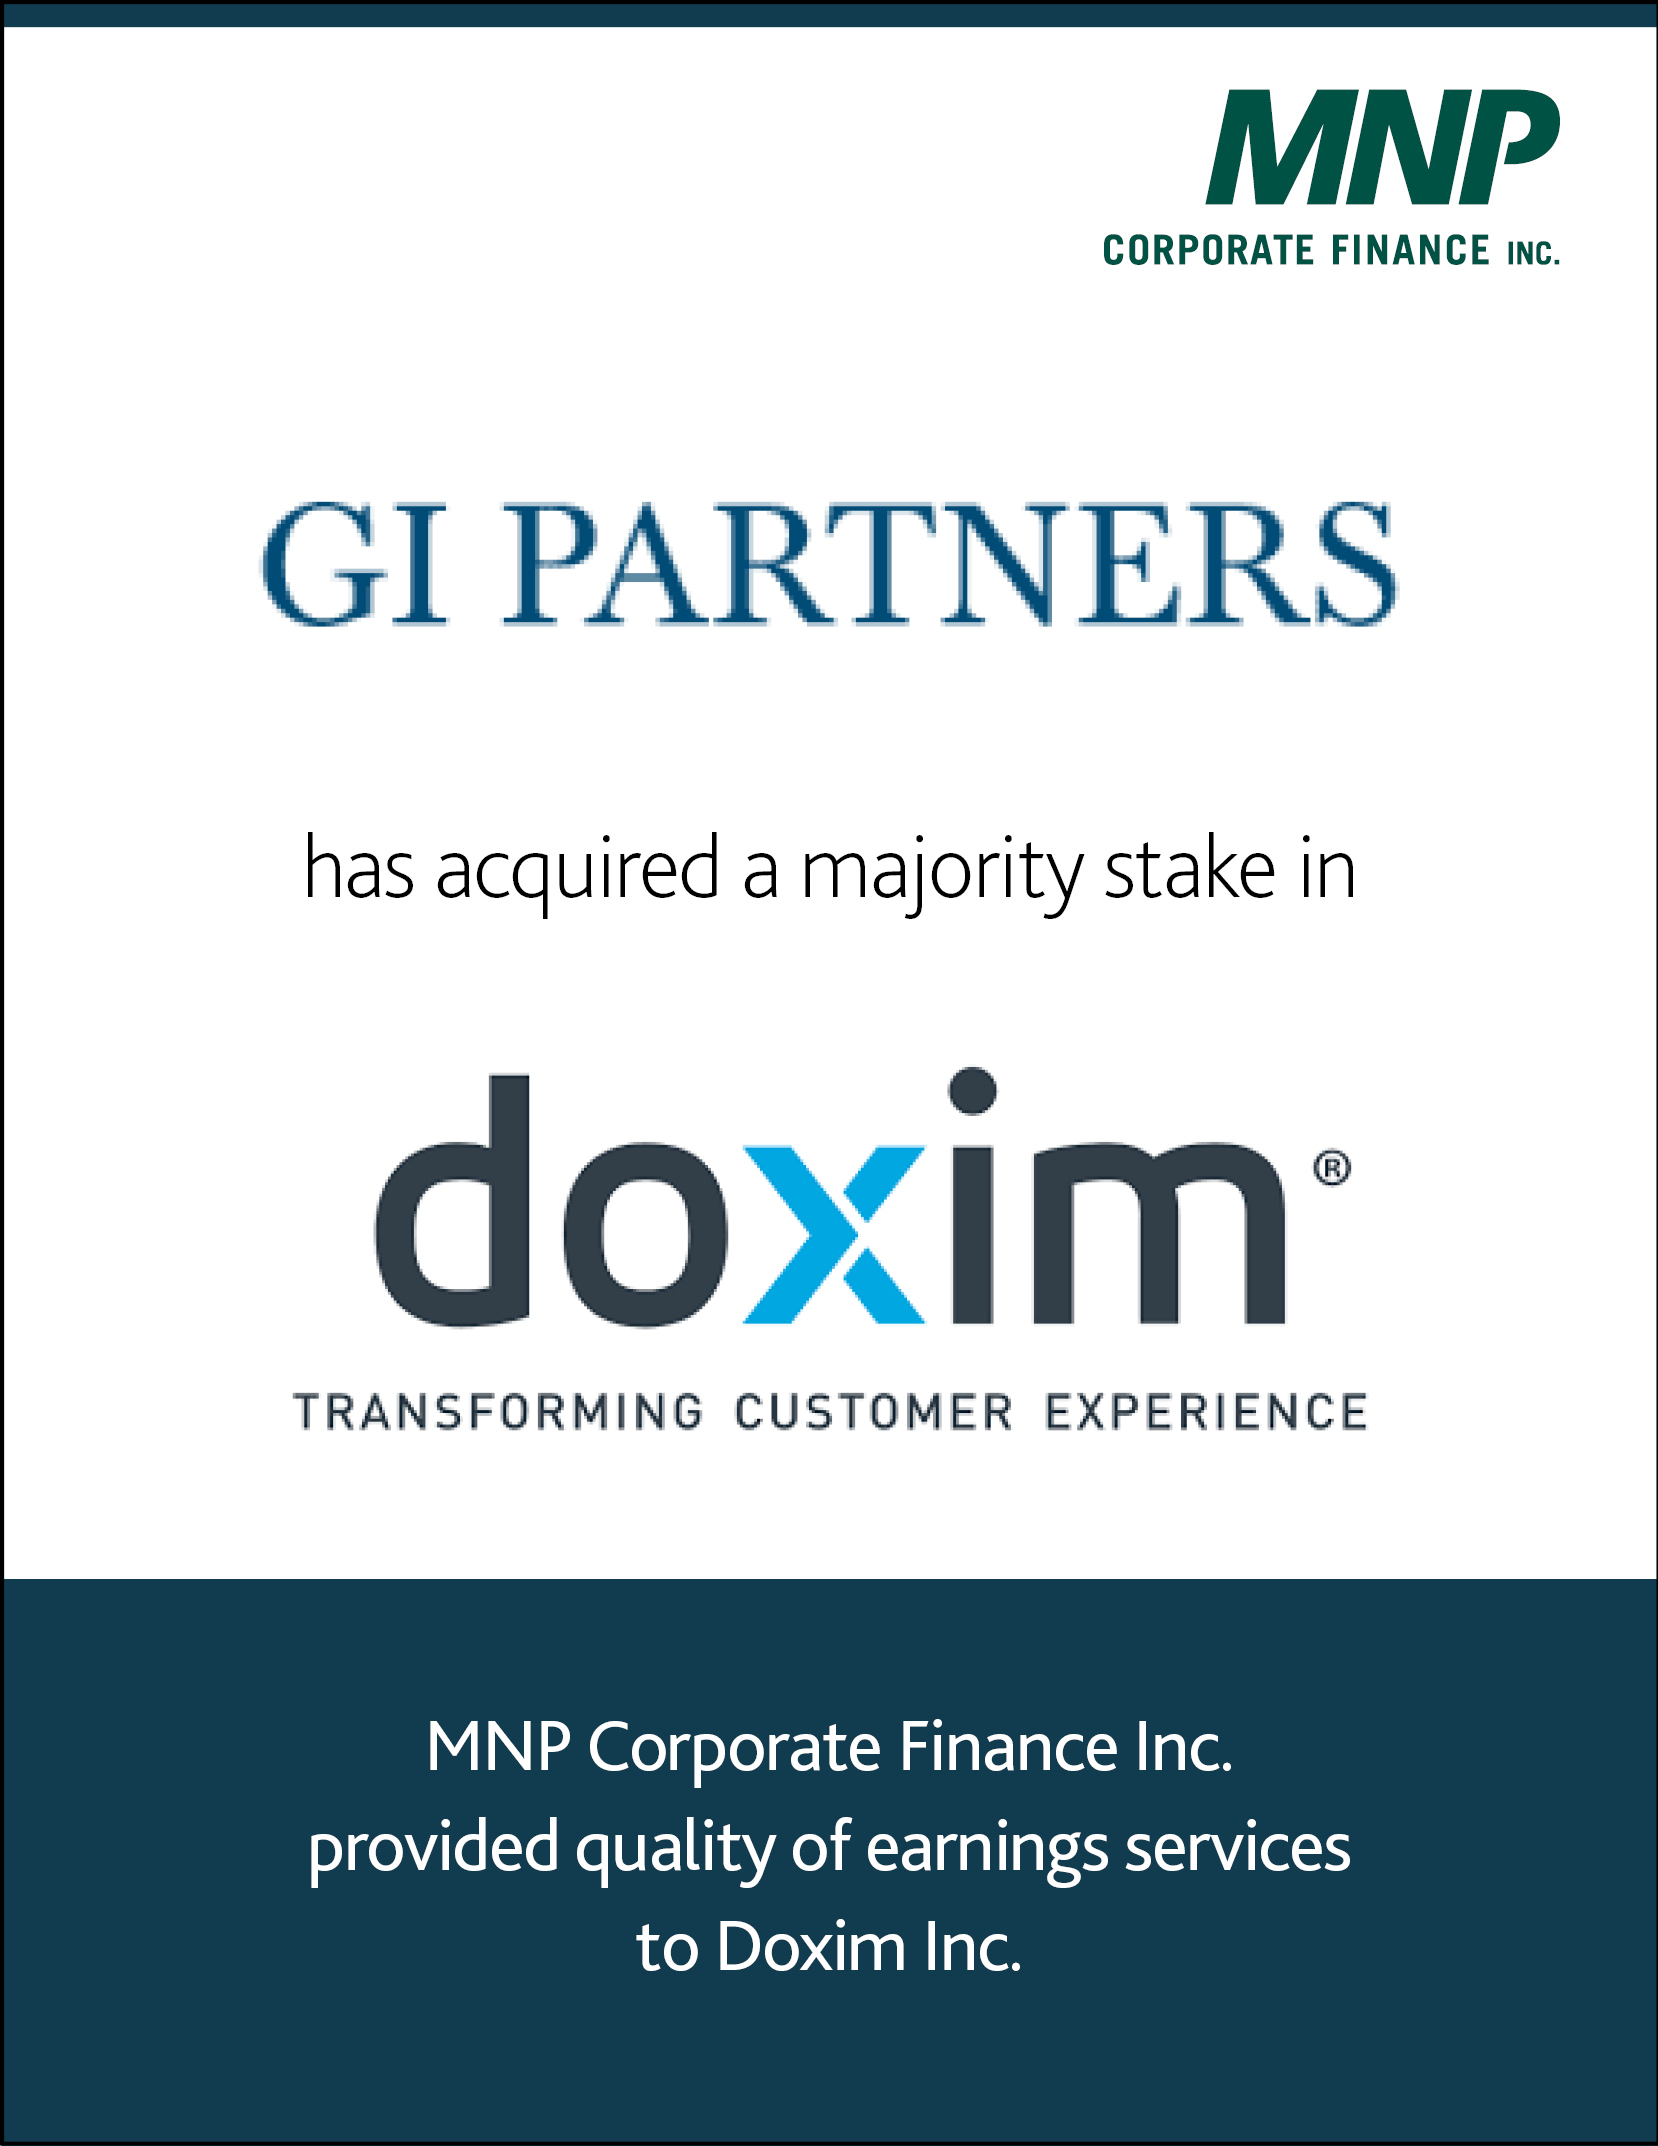 GI Partners has acquired a majority stake in Doxim Inc.